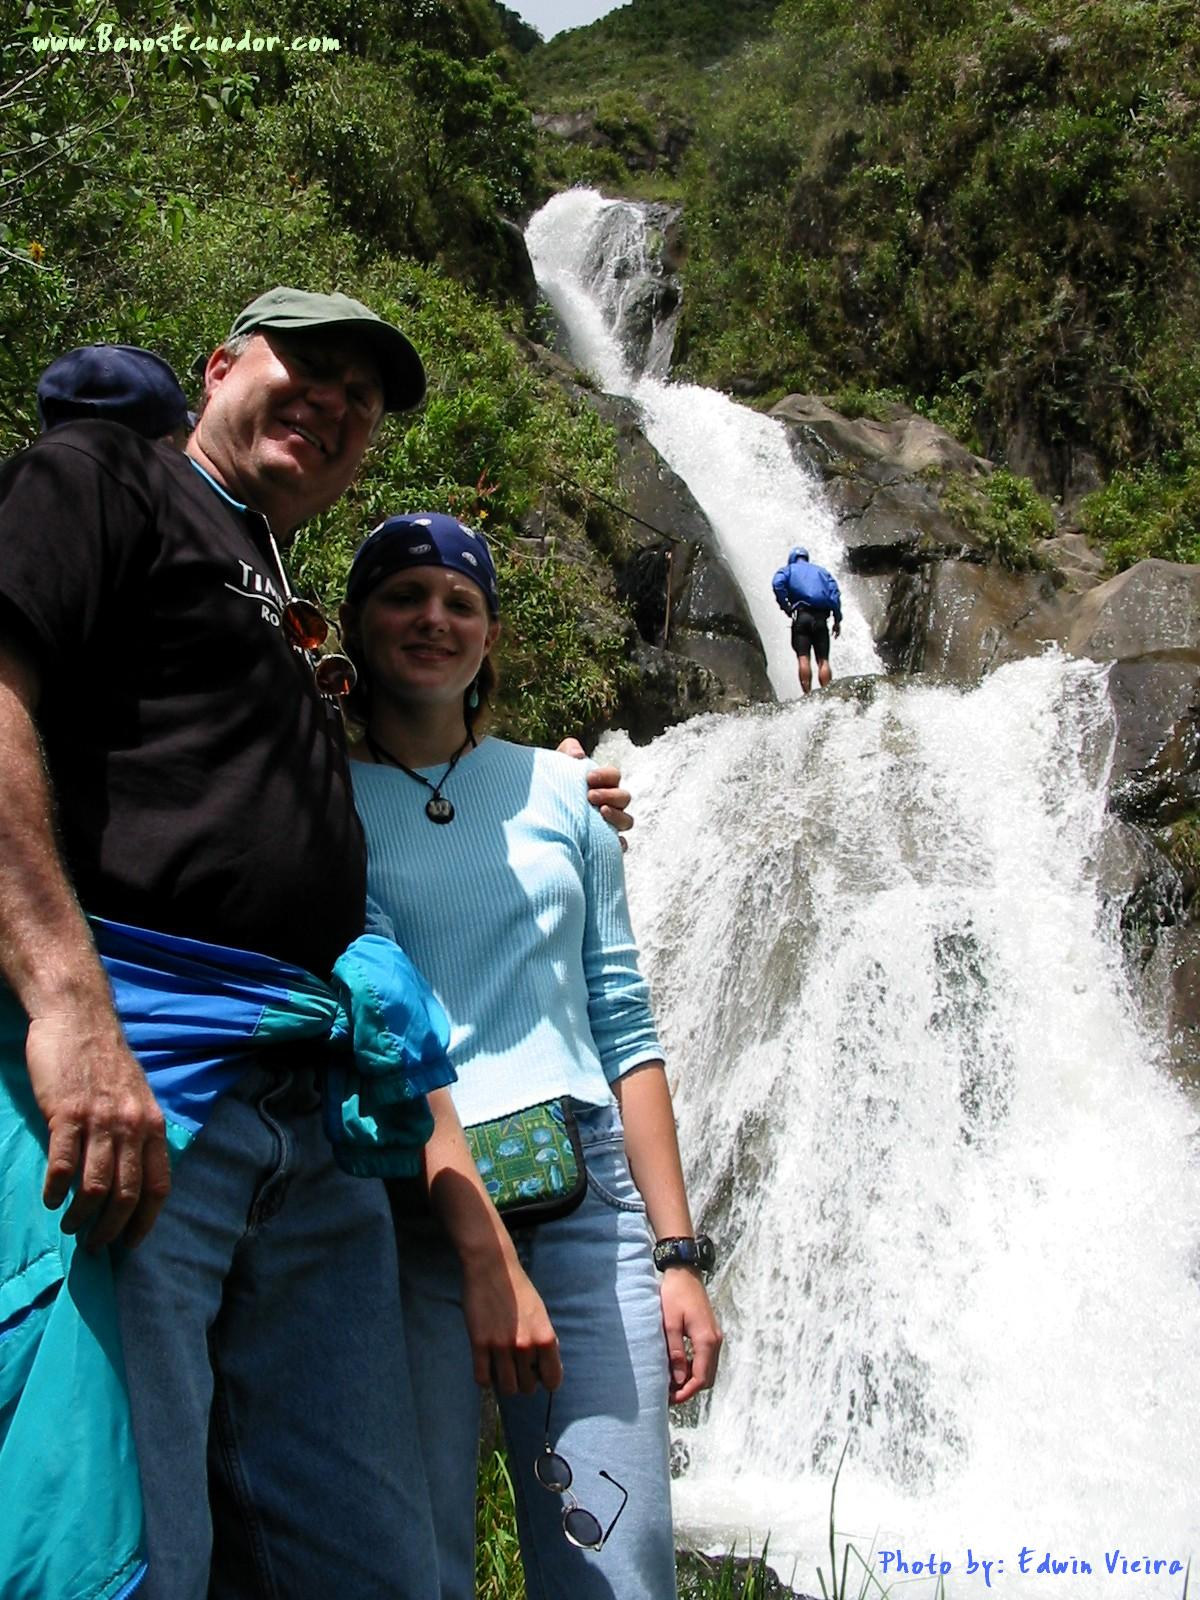 two people smiling, a man and a woman standing in front of a waterfall in a sunny day.